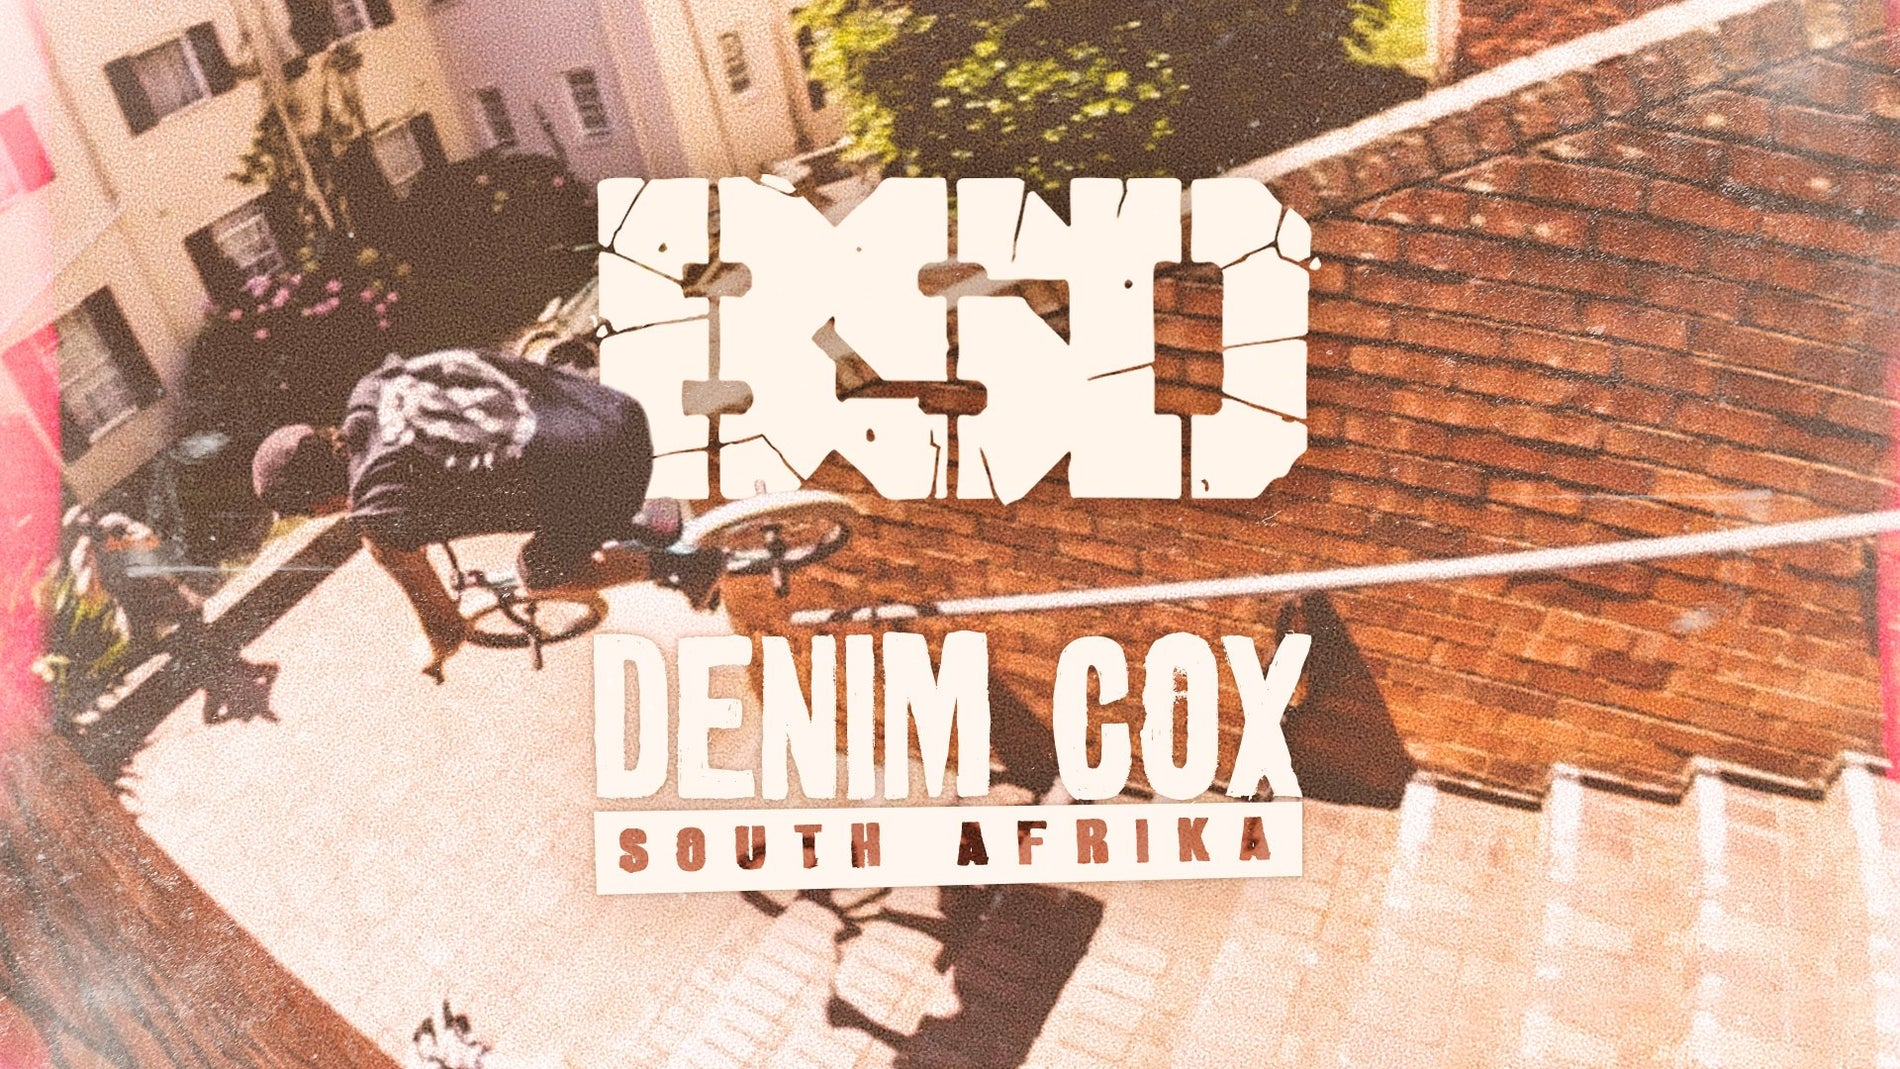 Denim Cox - South Afrika